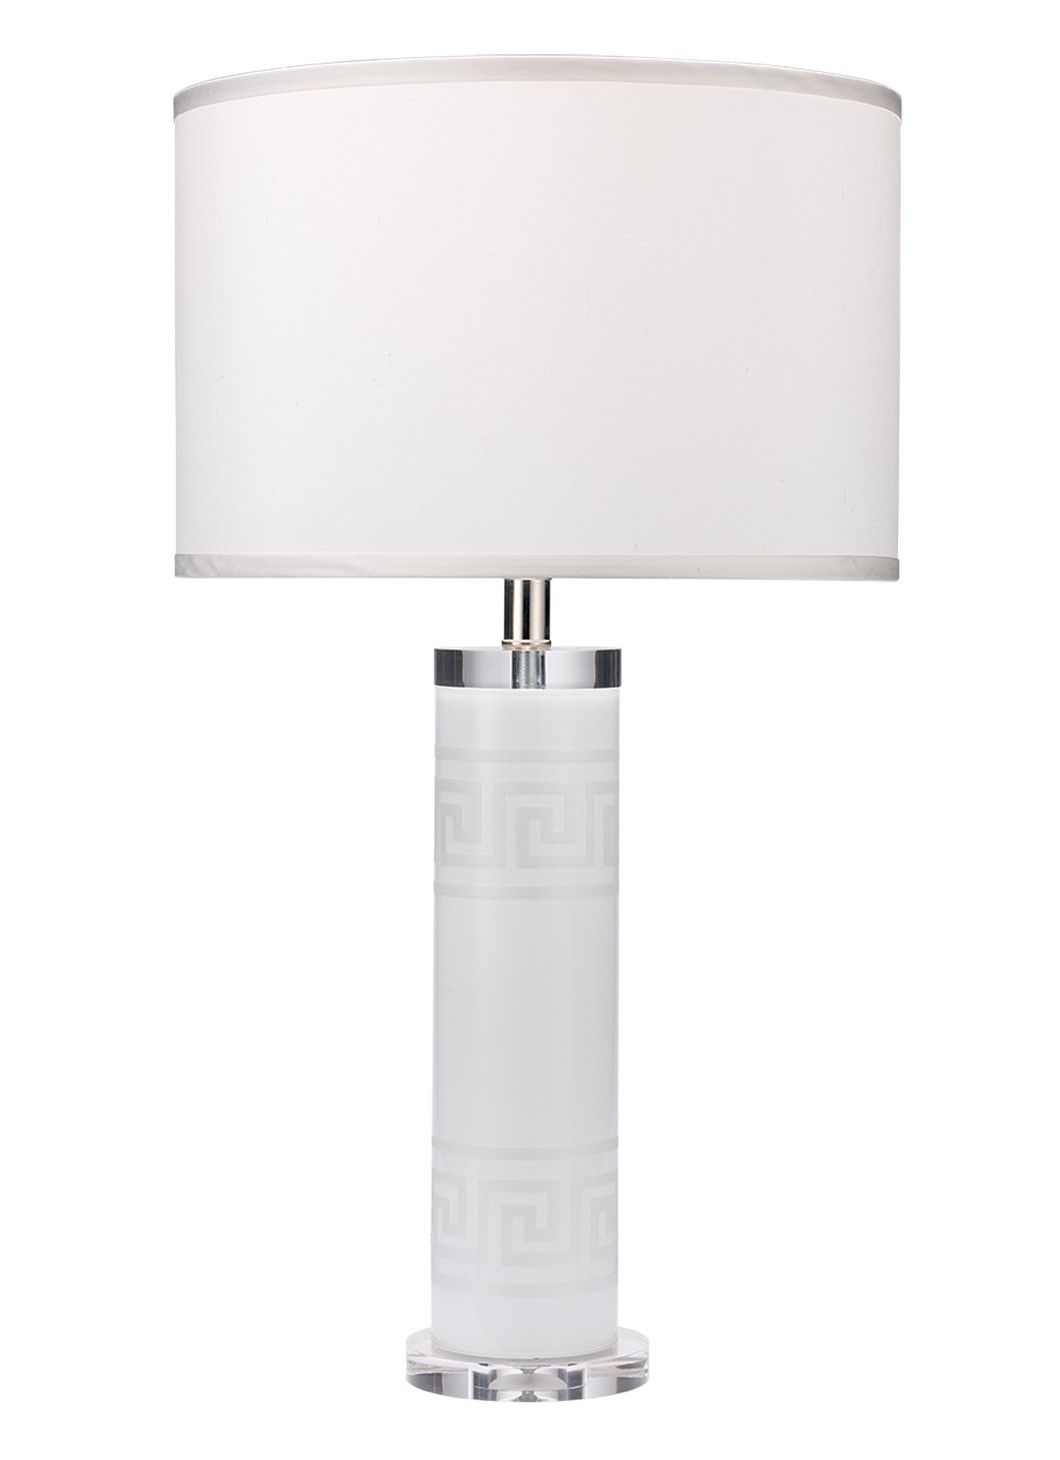 New meandros table lamp by jamie young lamps pinterest new meandros table lamp by jamie young geotapseo Gallery